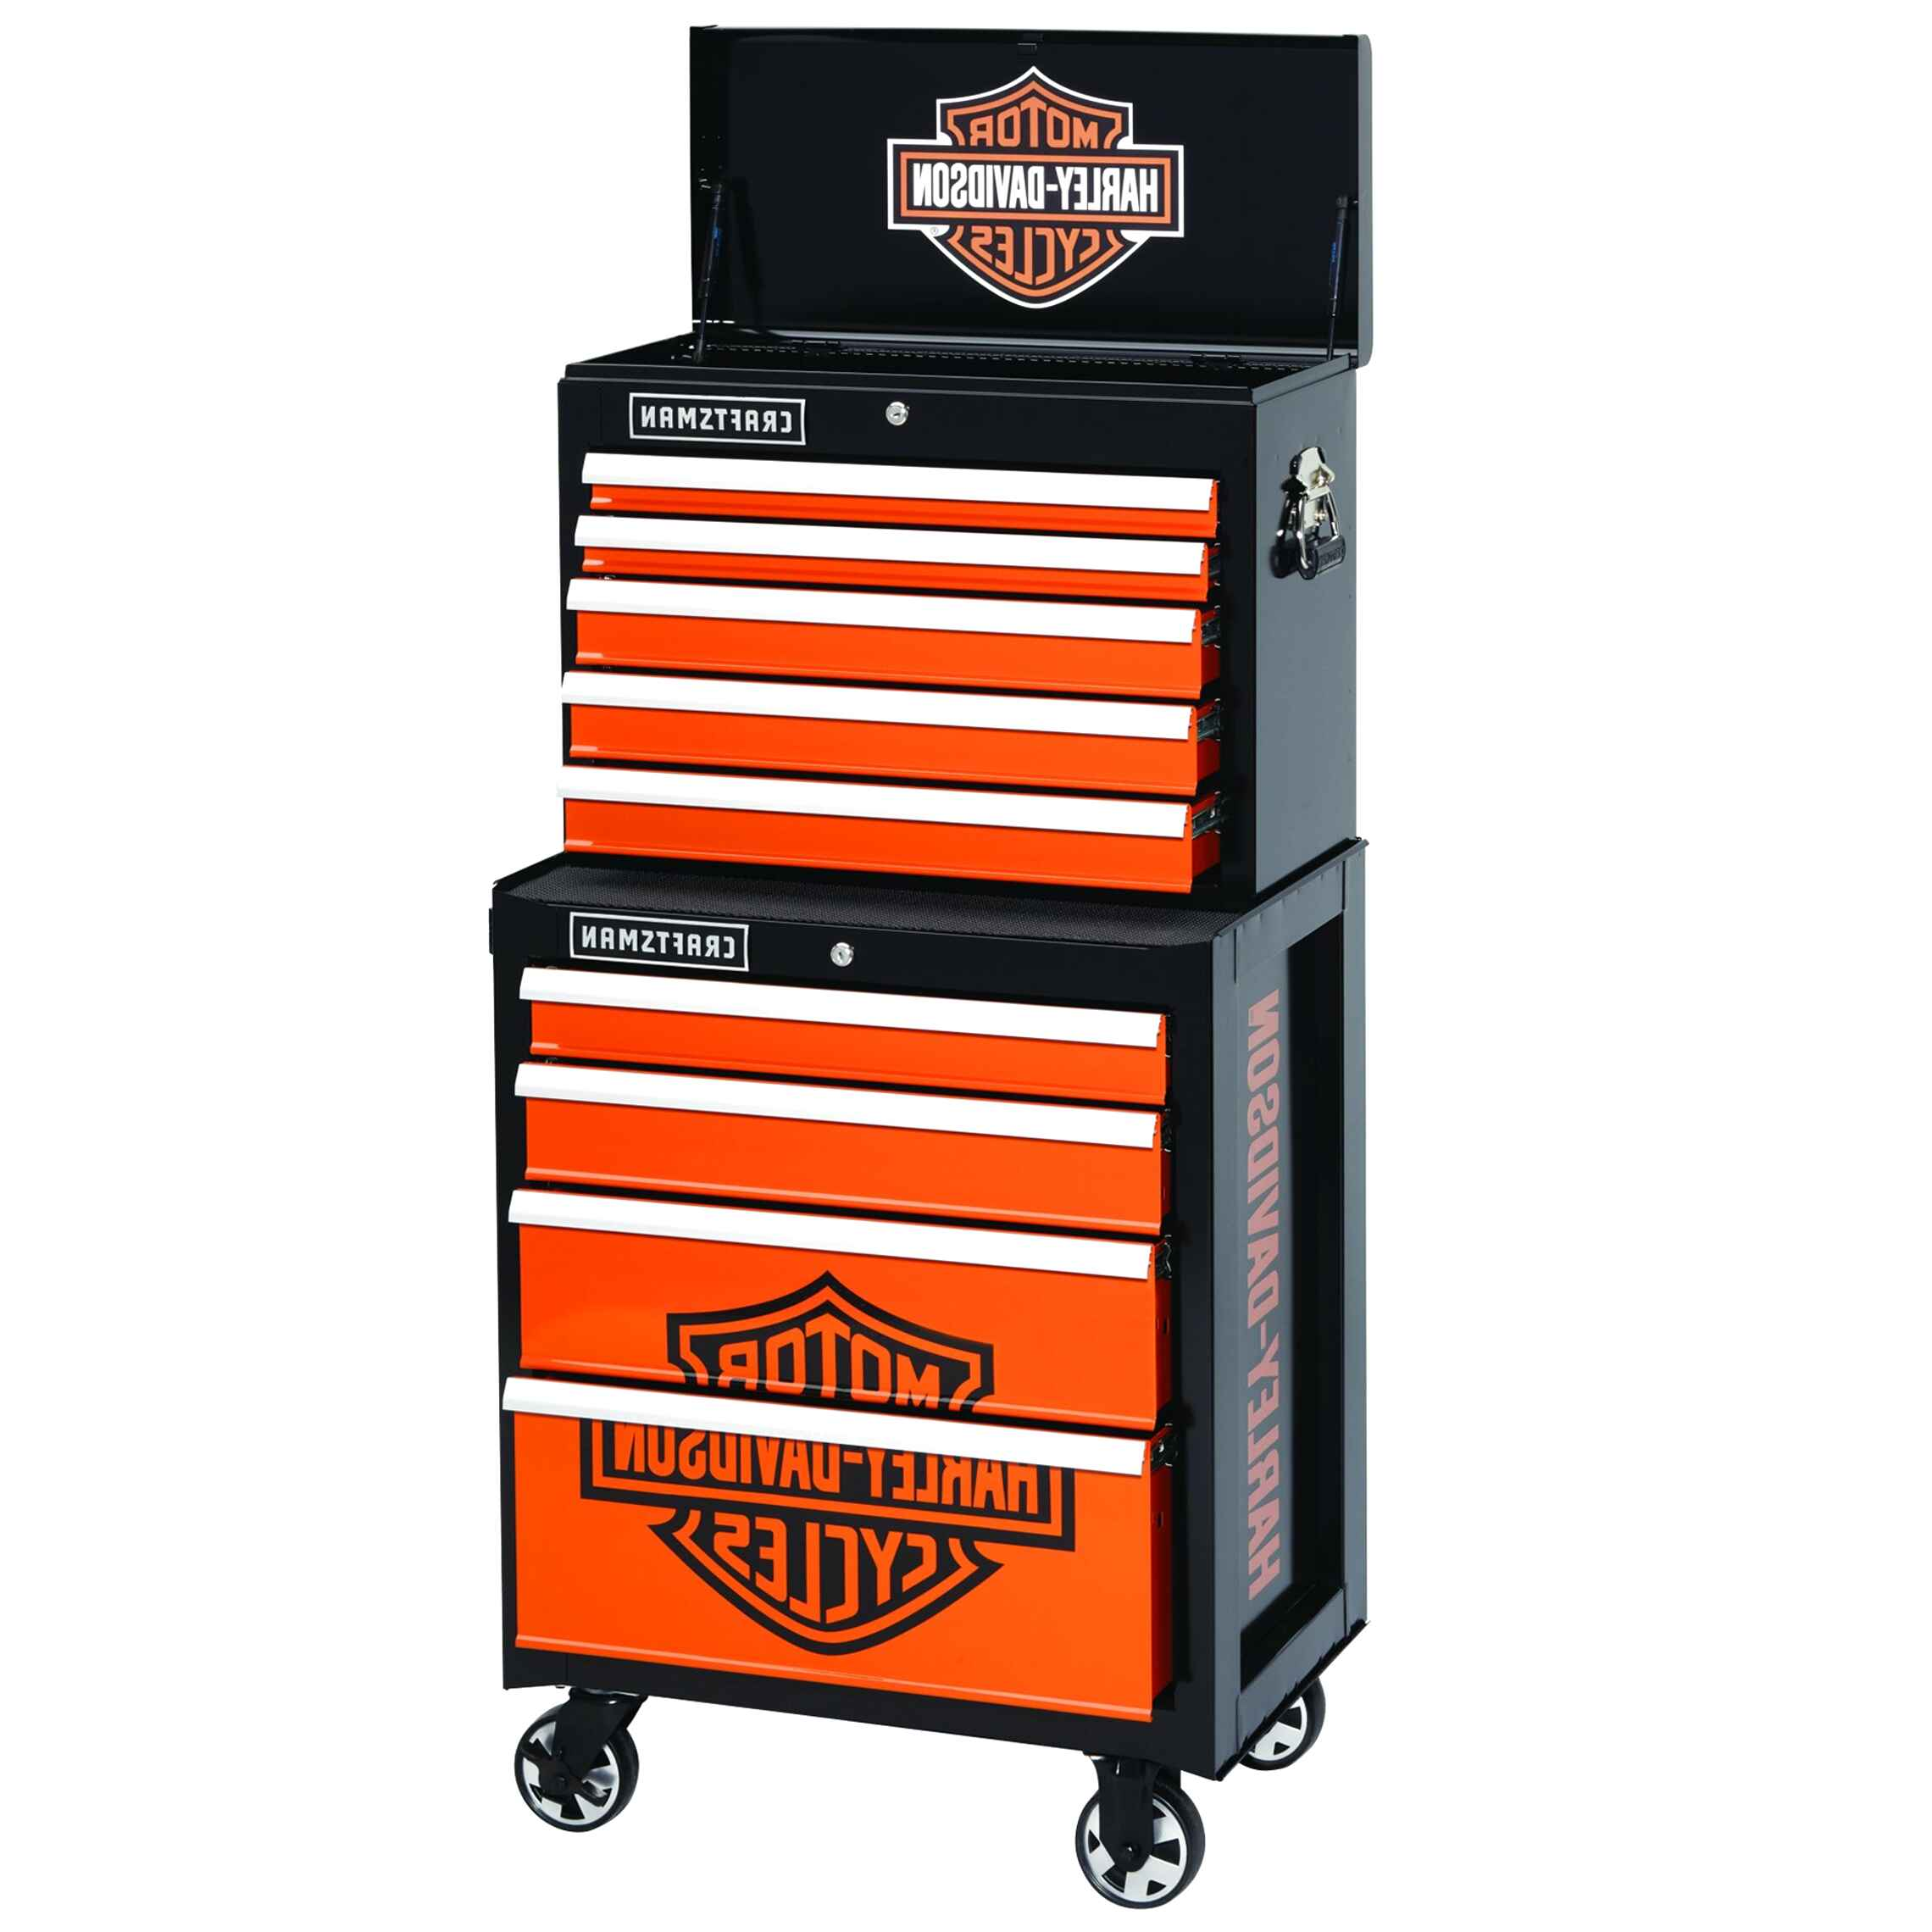 Harley Davidson Tool Box For Sale Only 3 Left At 75